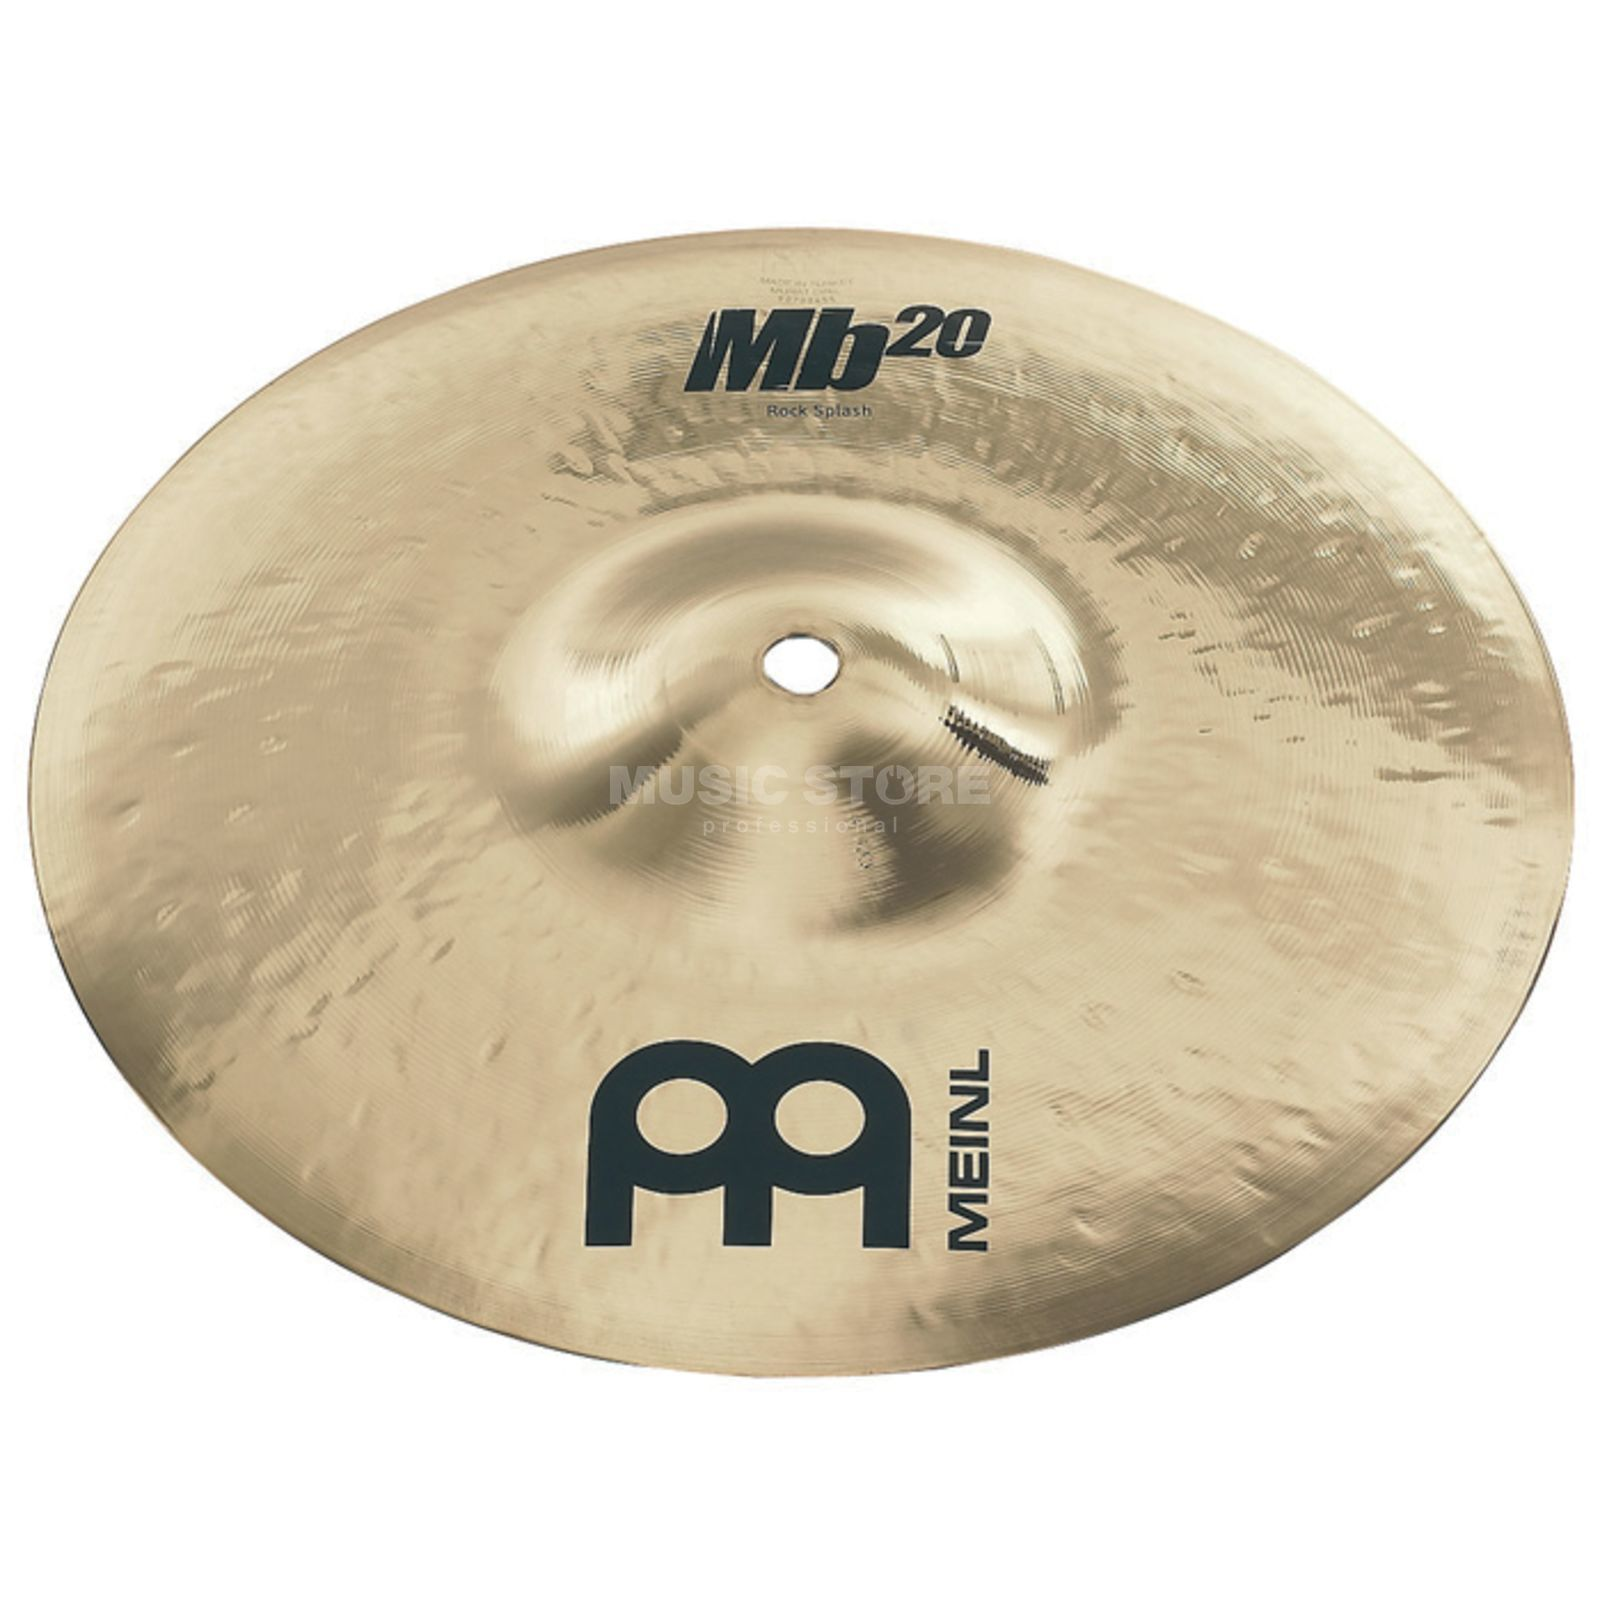 "Meinl MB20 Rock Splash 10"" MB20-10RS-B, Brilliant Finish Produktbild"